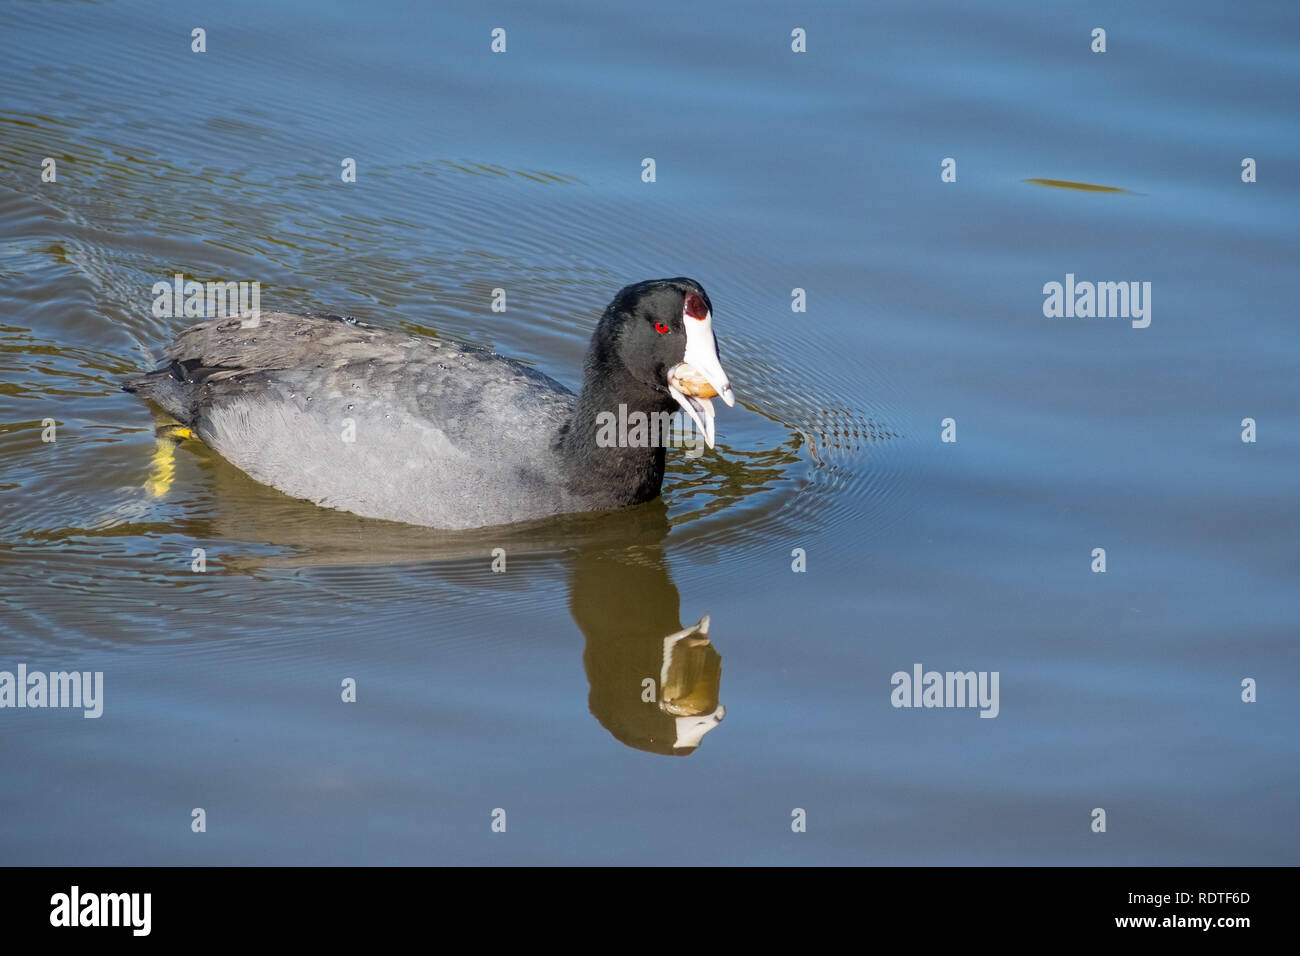 American coot (Fulica americana) fishing and eating mussels, Shoreline Lake and Park, Mountain View, San Francisco bay area, California Stock Photo